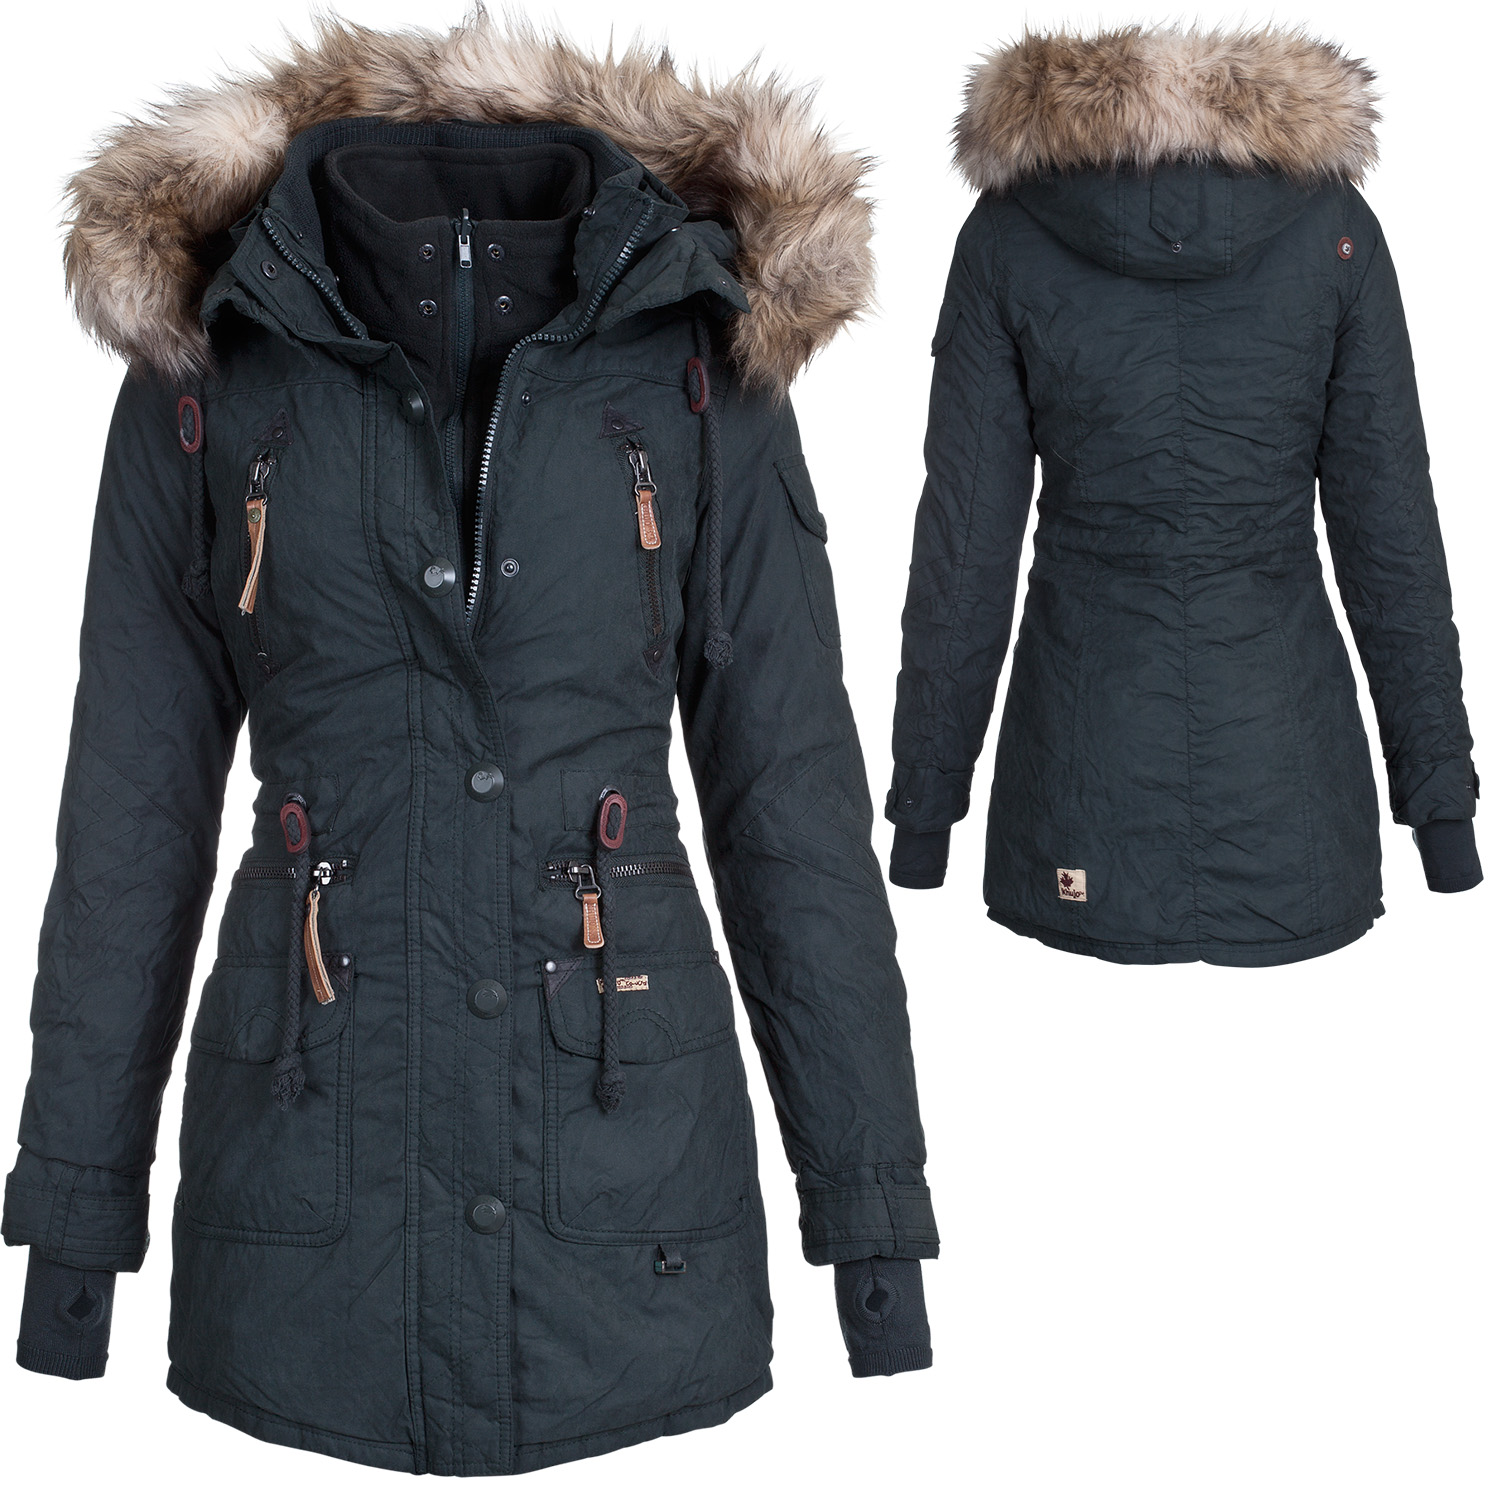 khujo damen winter mantel jacke camilla wintermantel winterjacke parka ebay. Black Bedroom Furniture Sets. Home Design Ideas